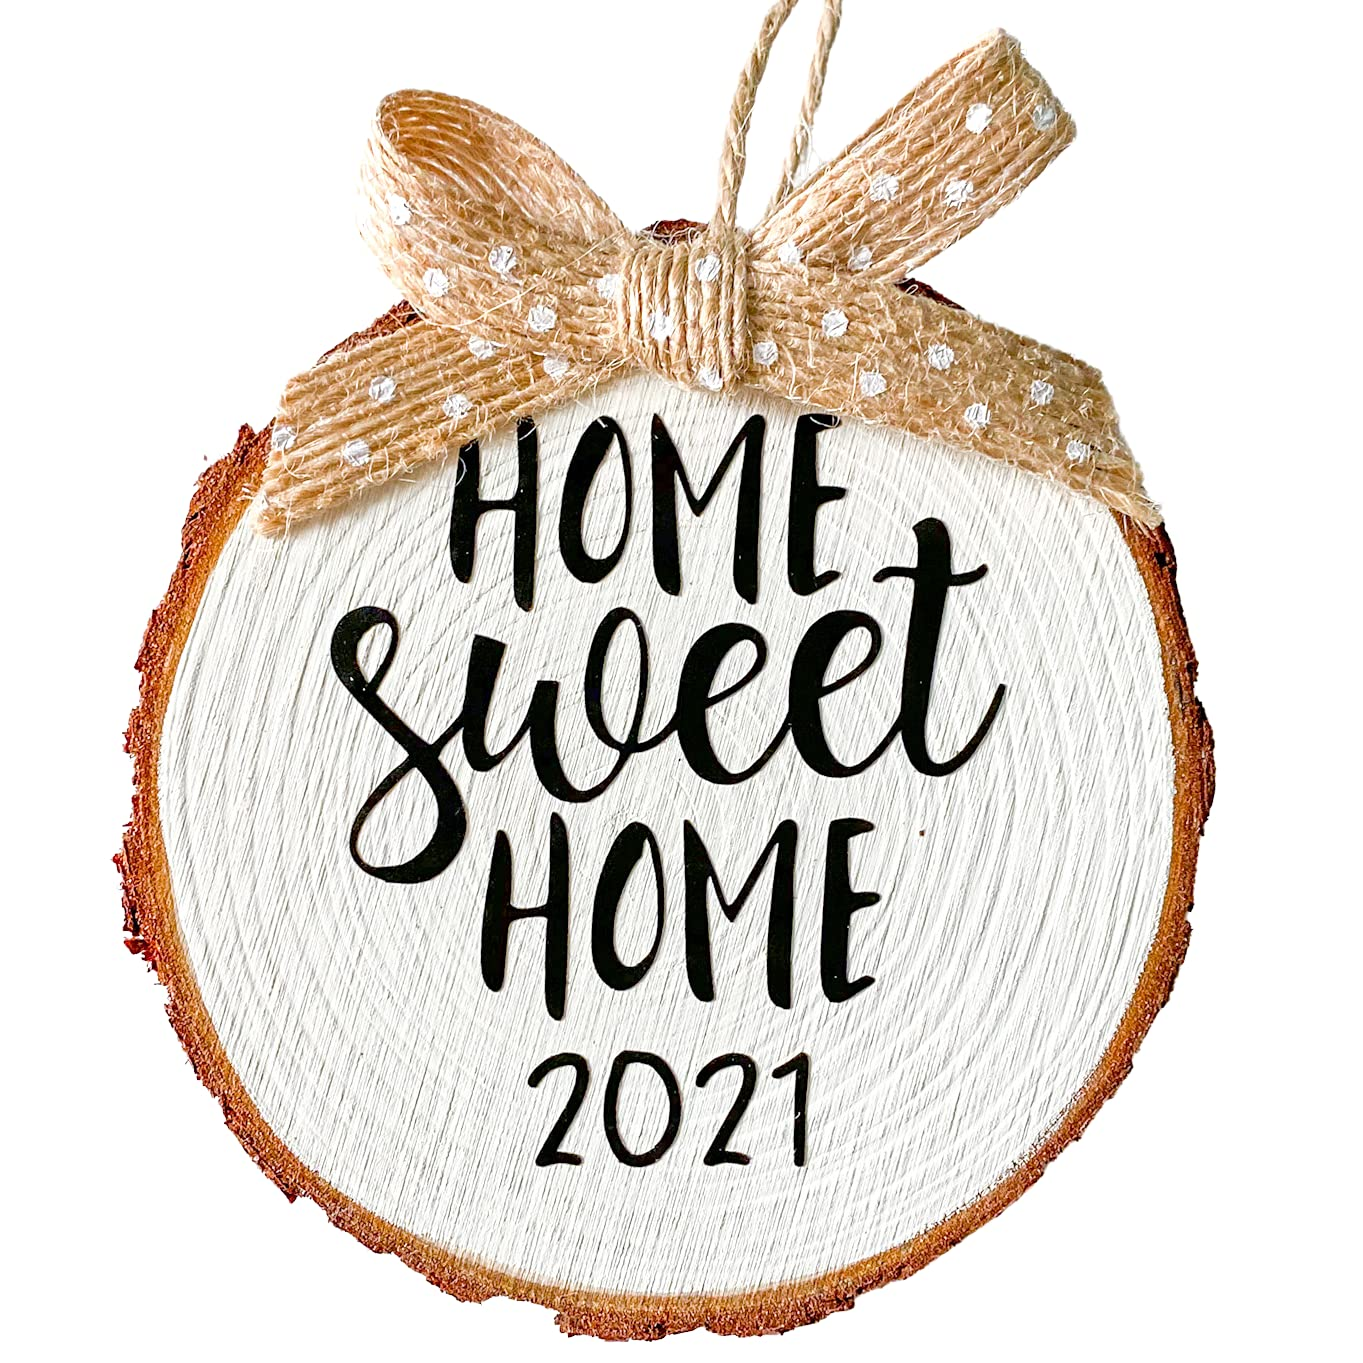 Home Sweet Home 2021 Wood Slice Christmas Ornament (Gift Box Included) (White, Burlap Bow)